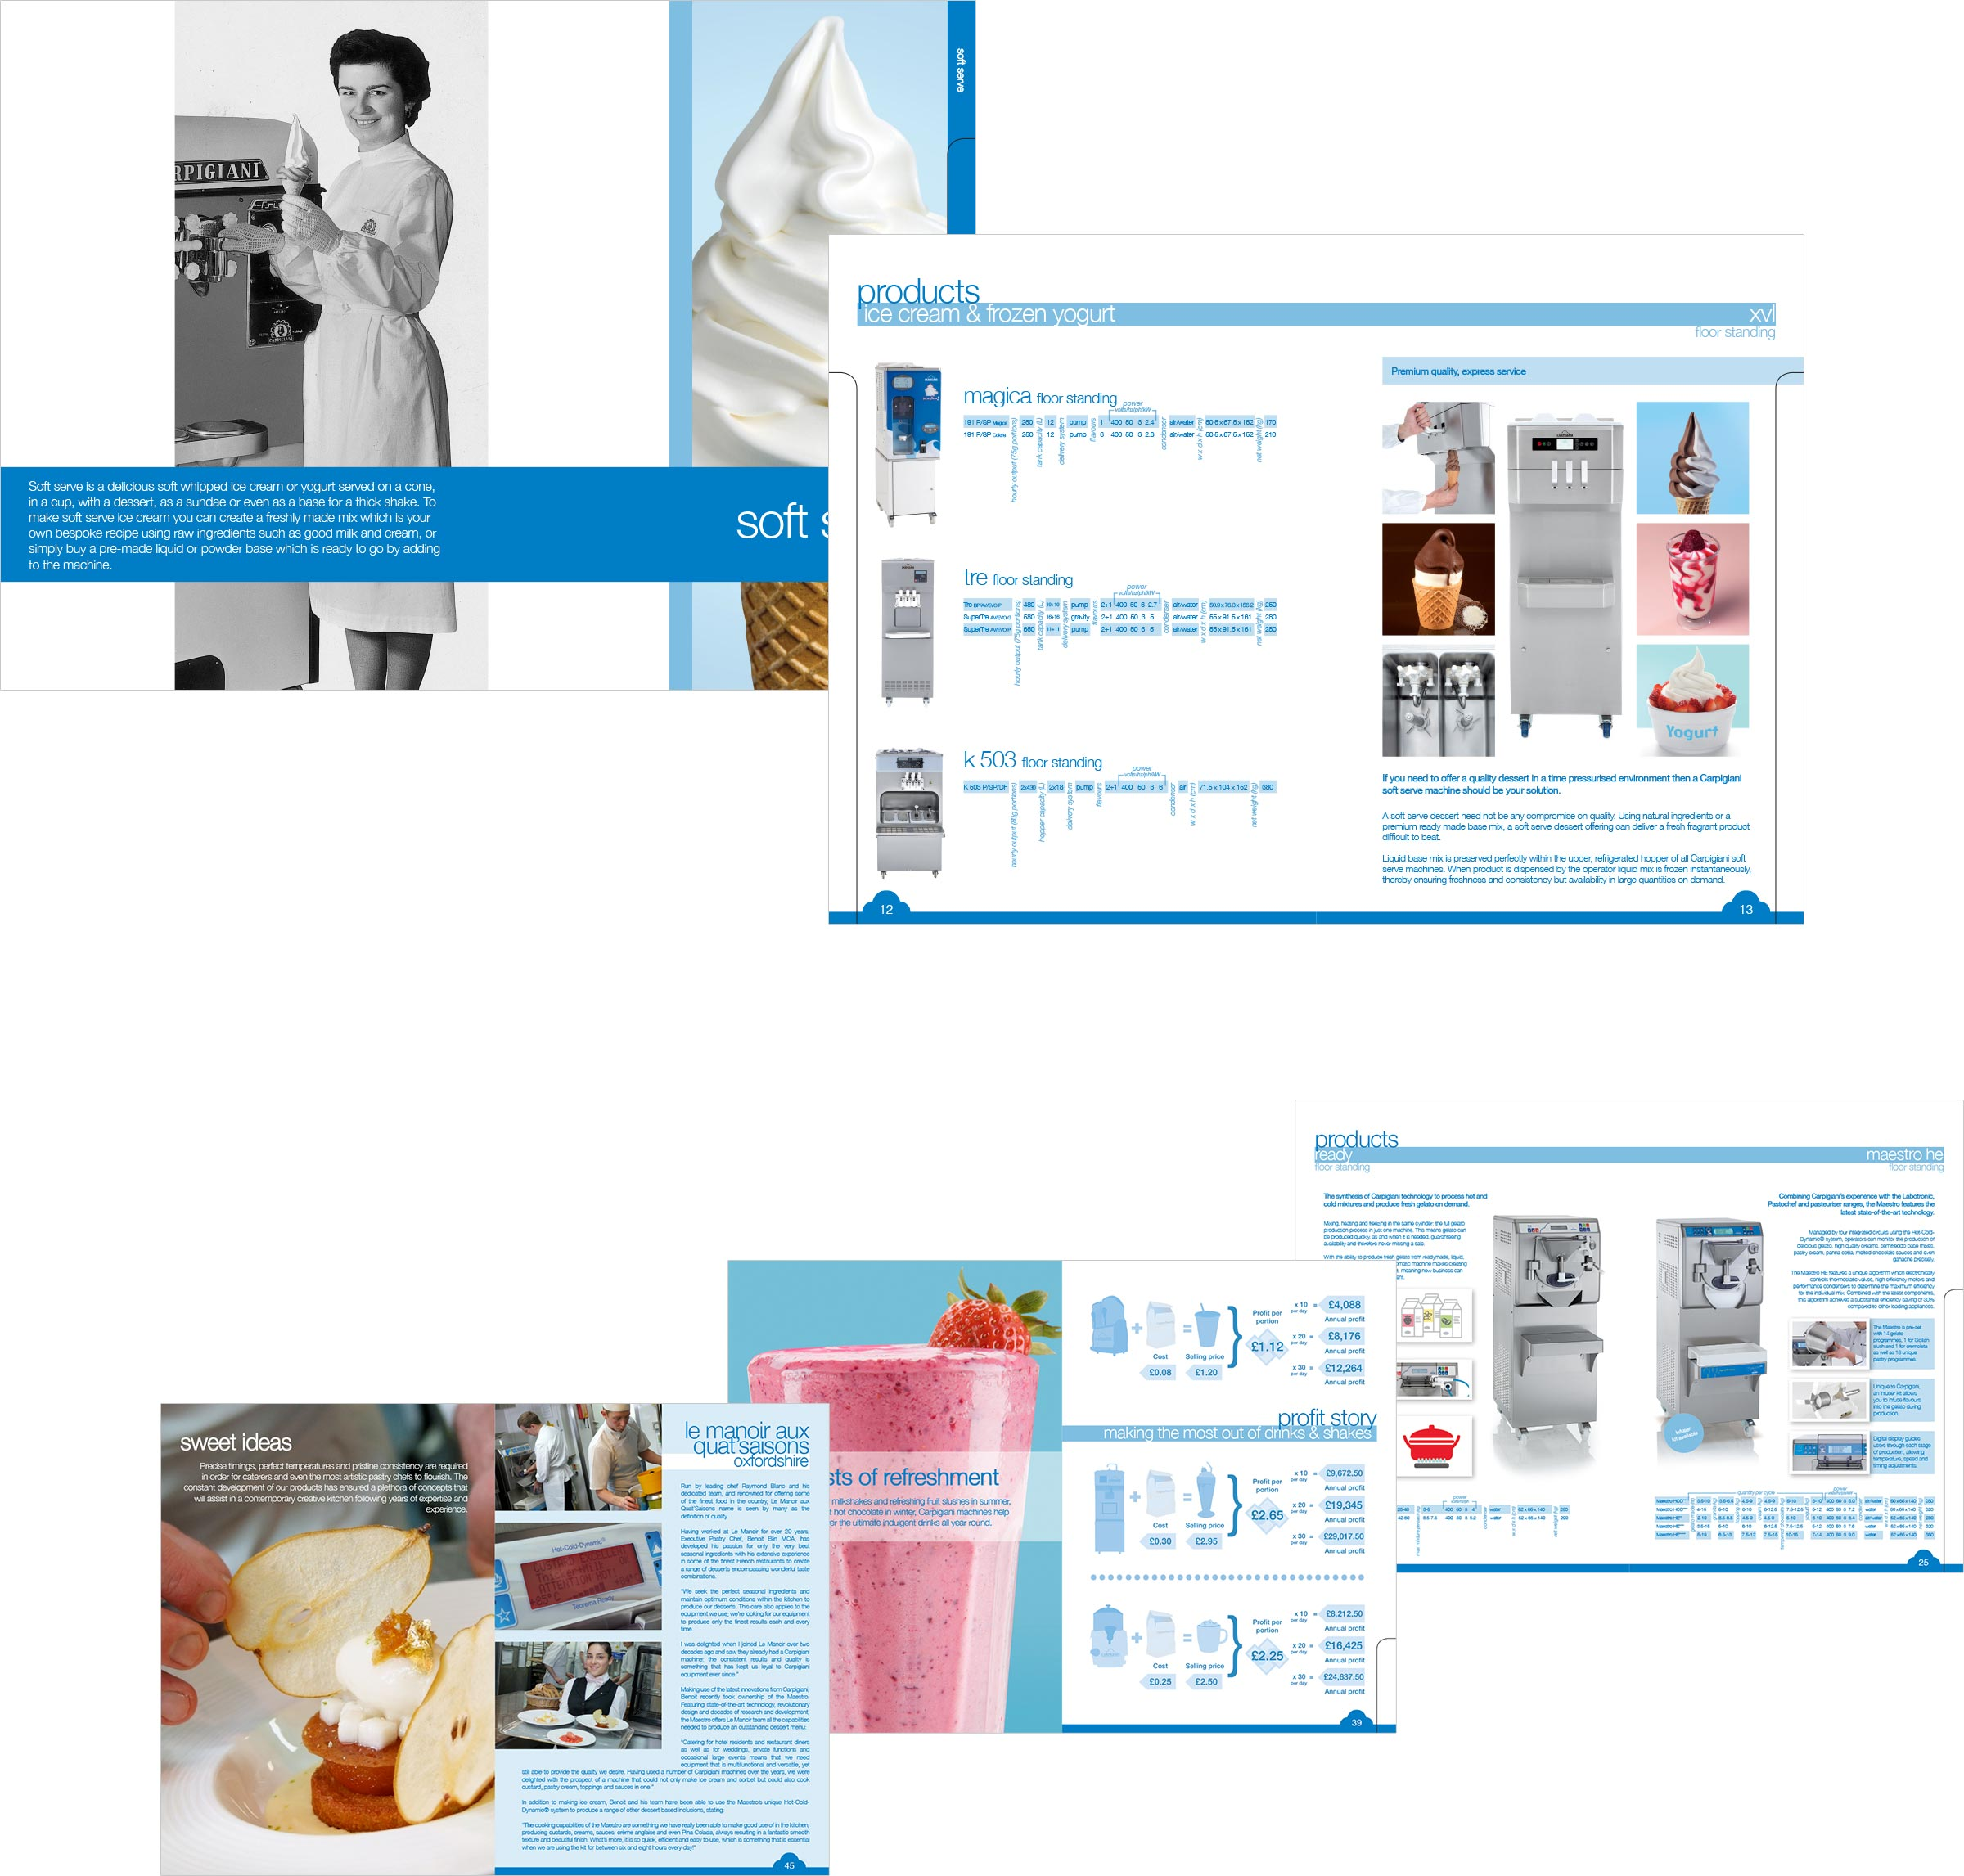 A selection of brochure pages detailing the designs and layouts used within the brochure.